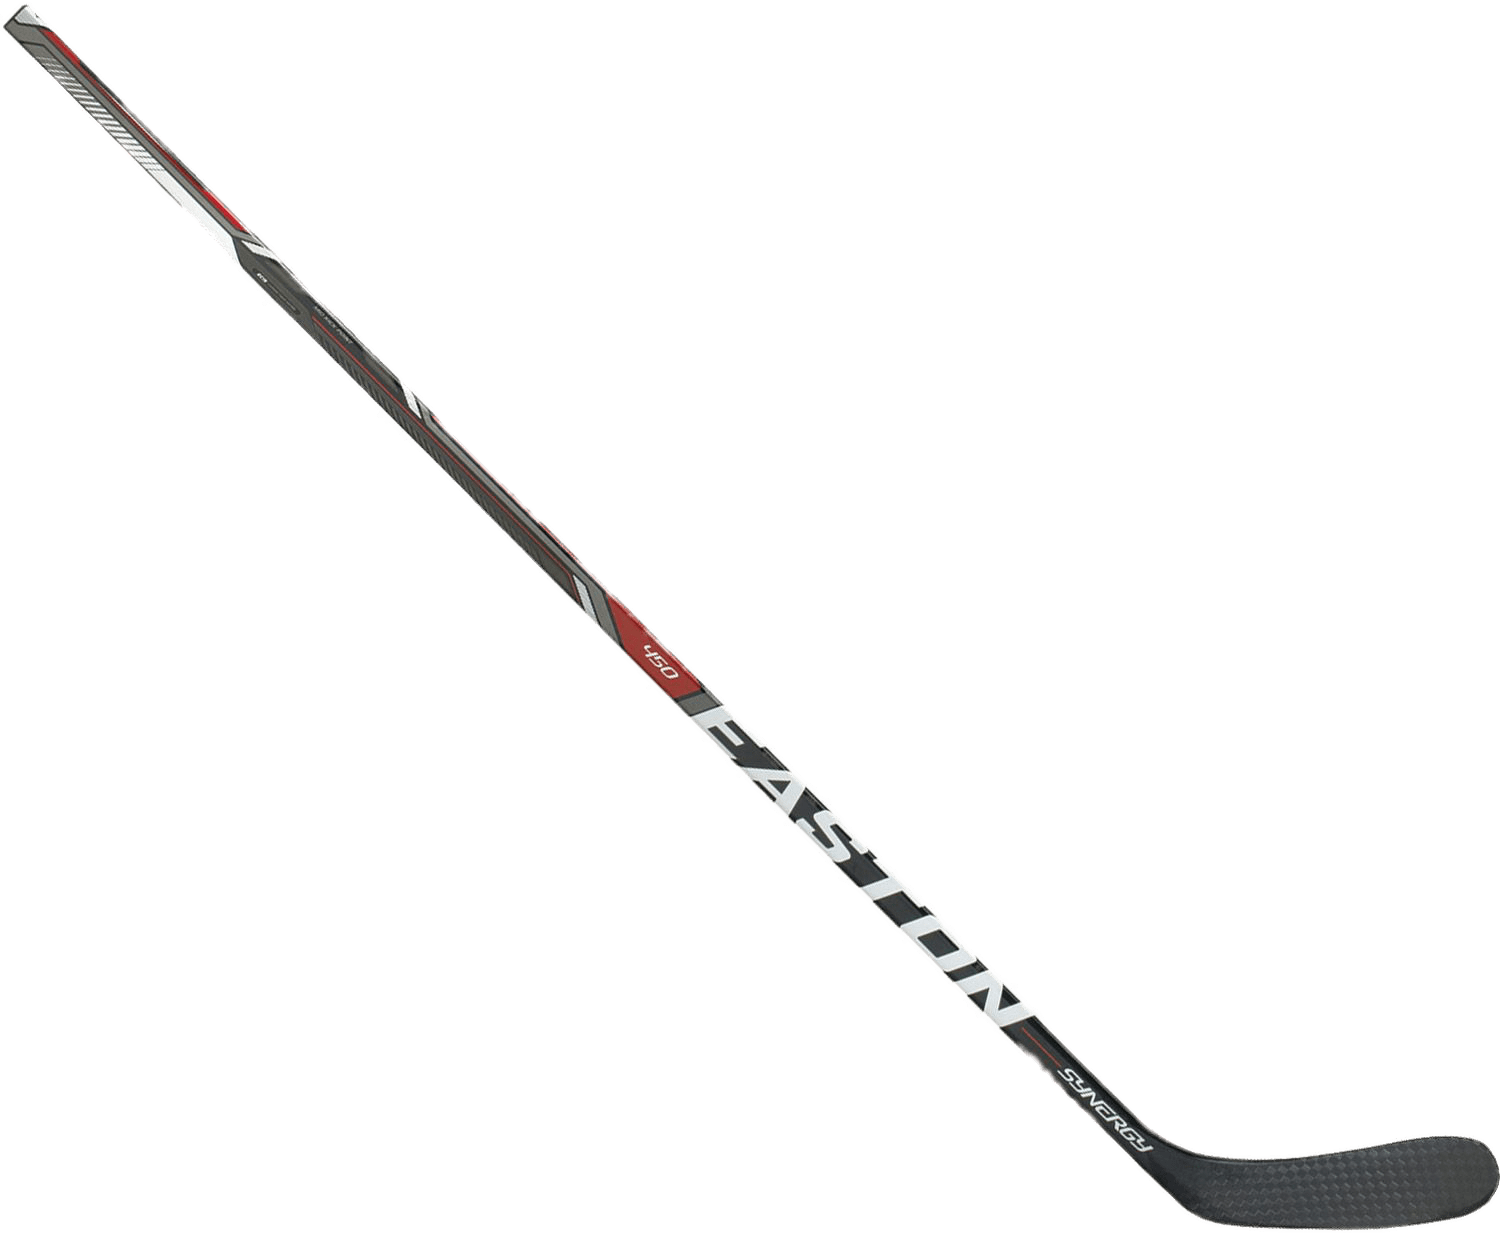 Hockey Stick Png - Download